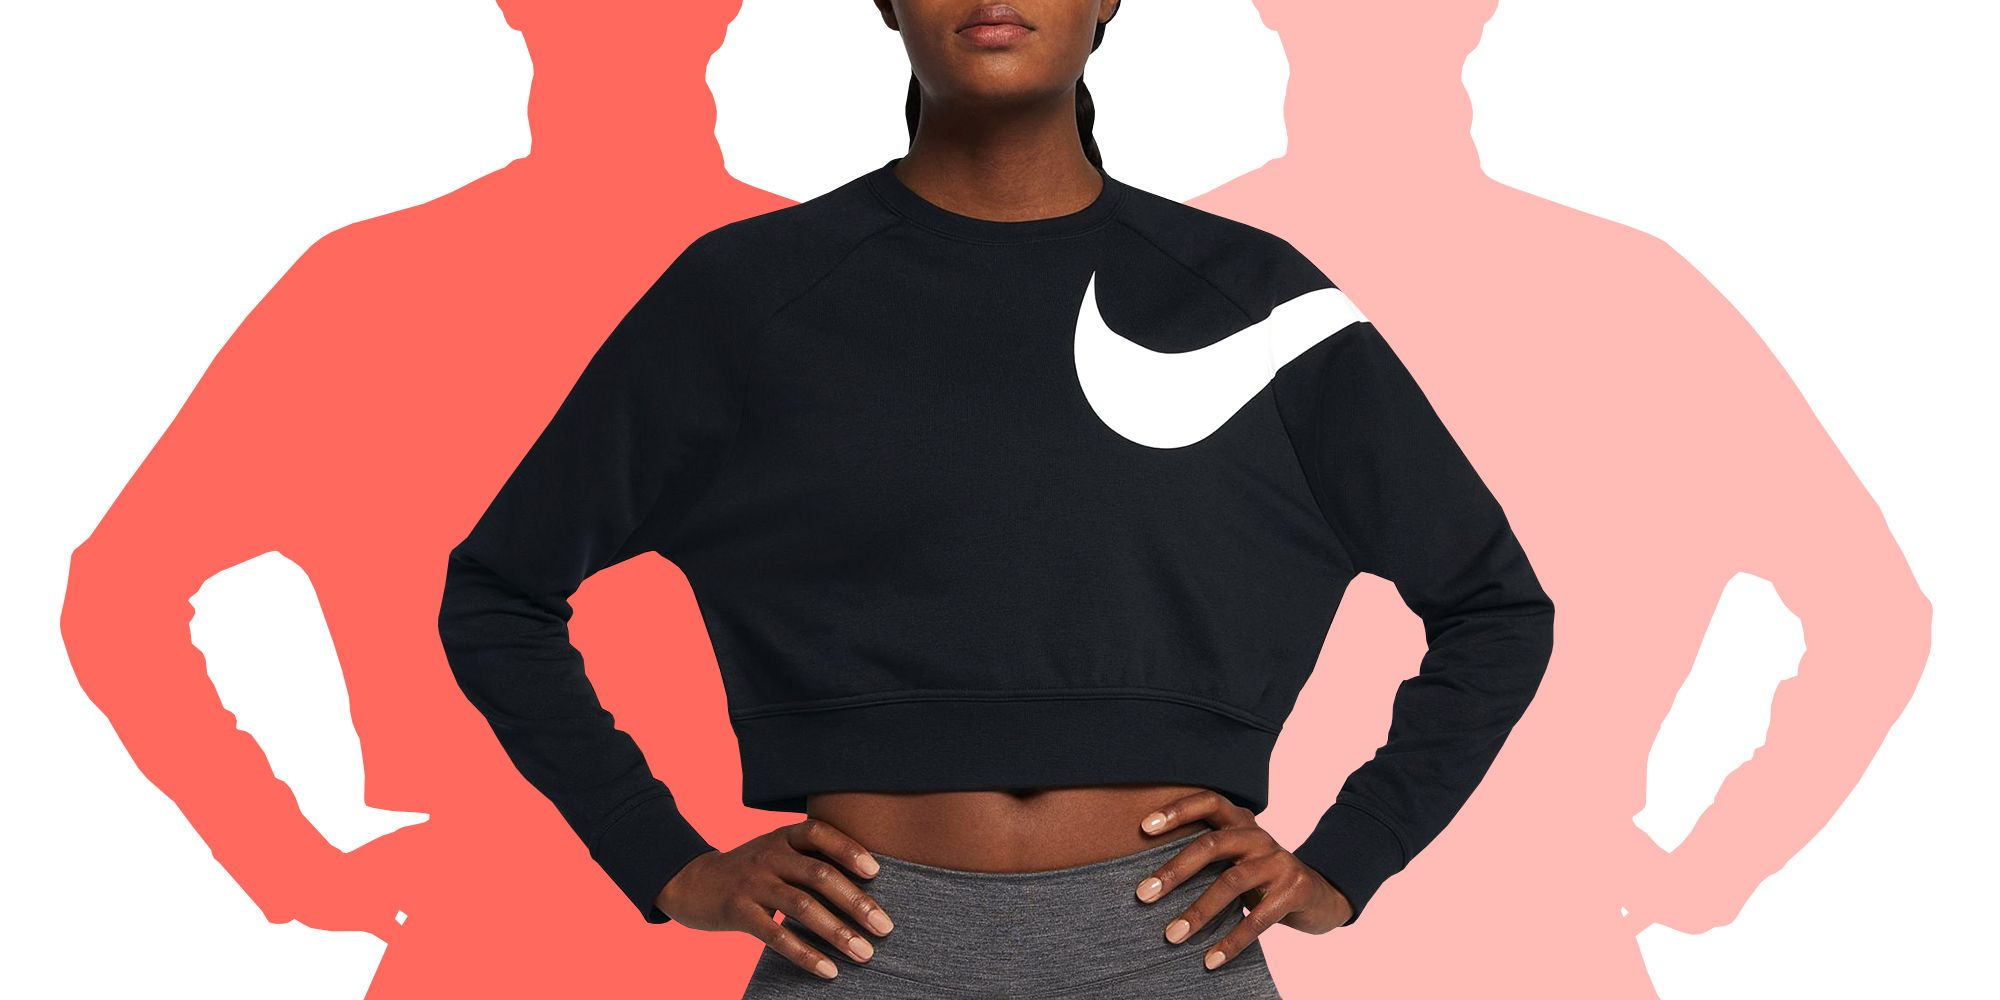 a70be9bf7b3 10 Best Crop Tops for 2018 - Cute Crop Tops with Short & Long Sleeves